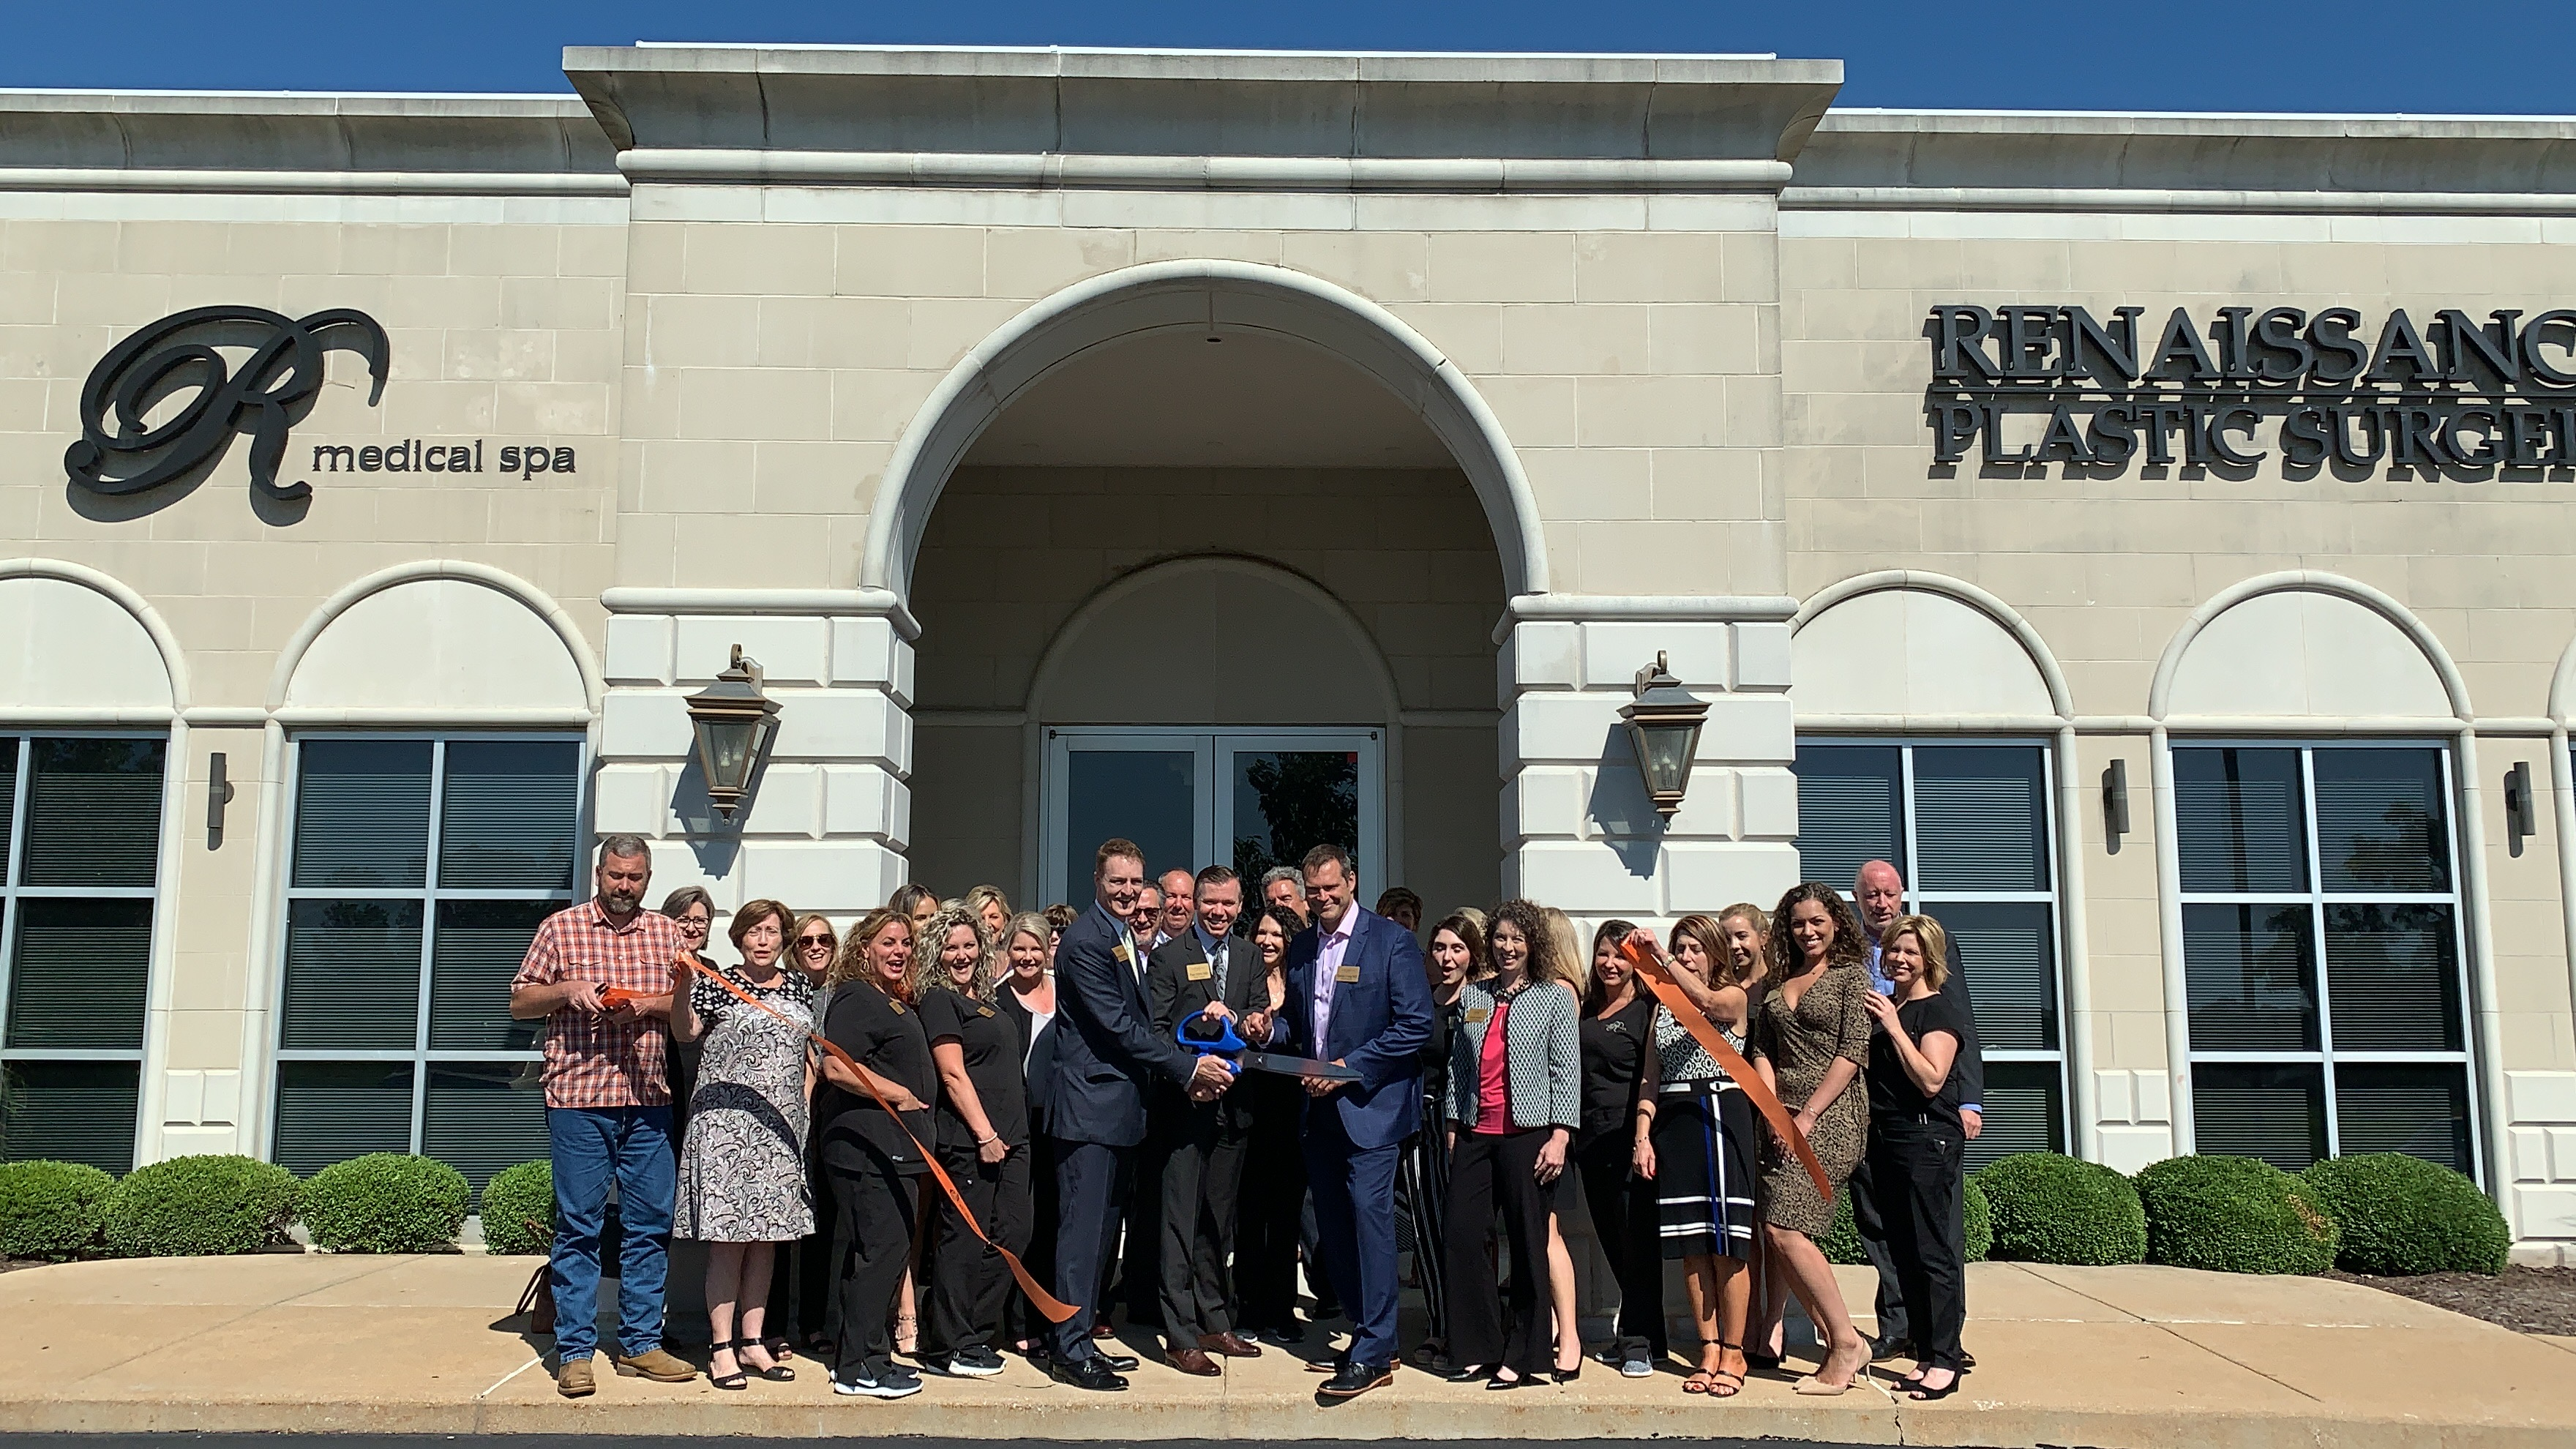 Image for Renaissance Plastic Surgery Celebrates 20th anniversary with Ribbon Cutting